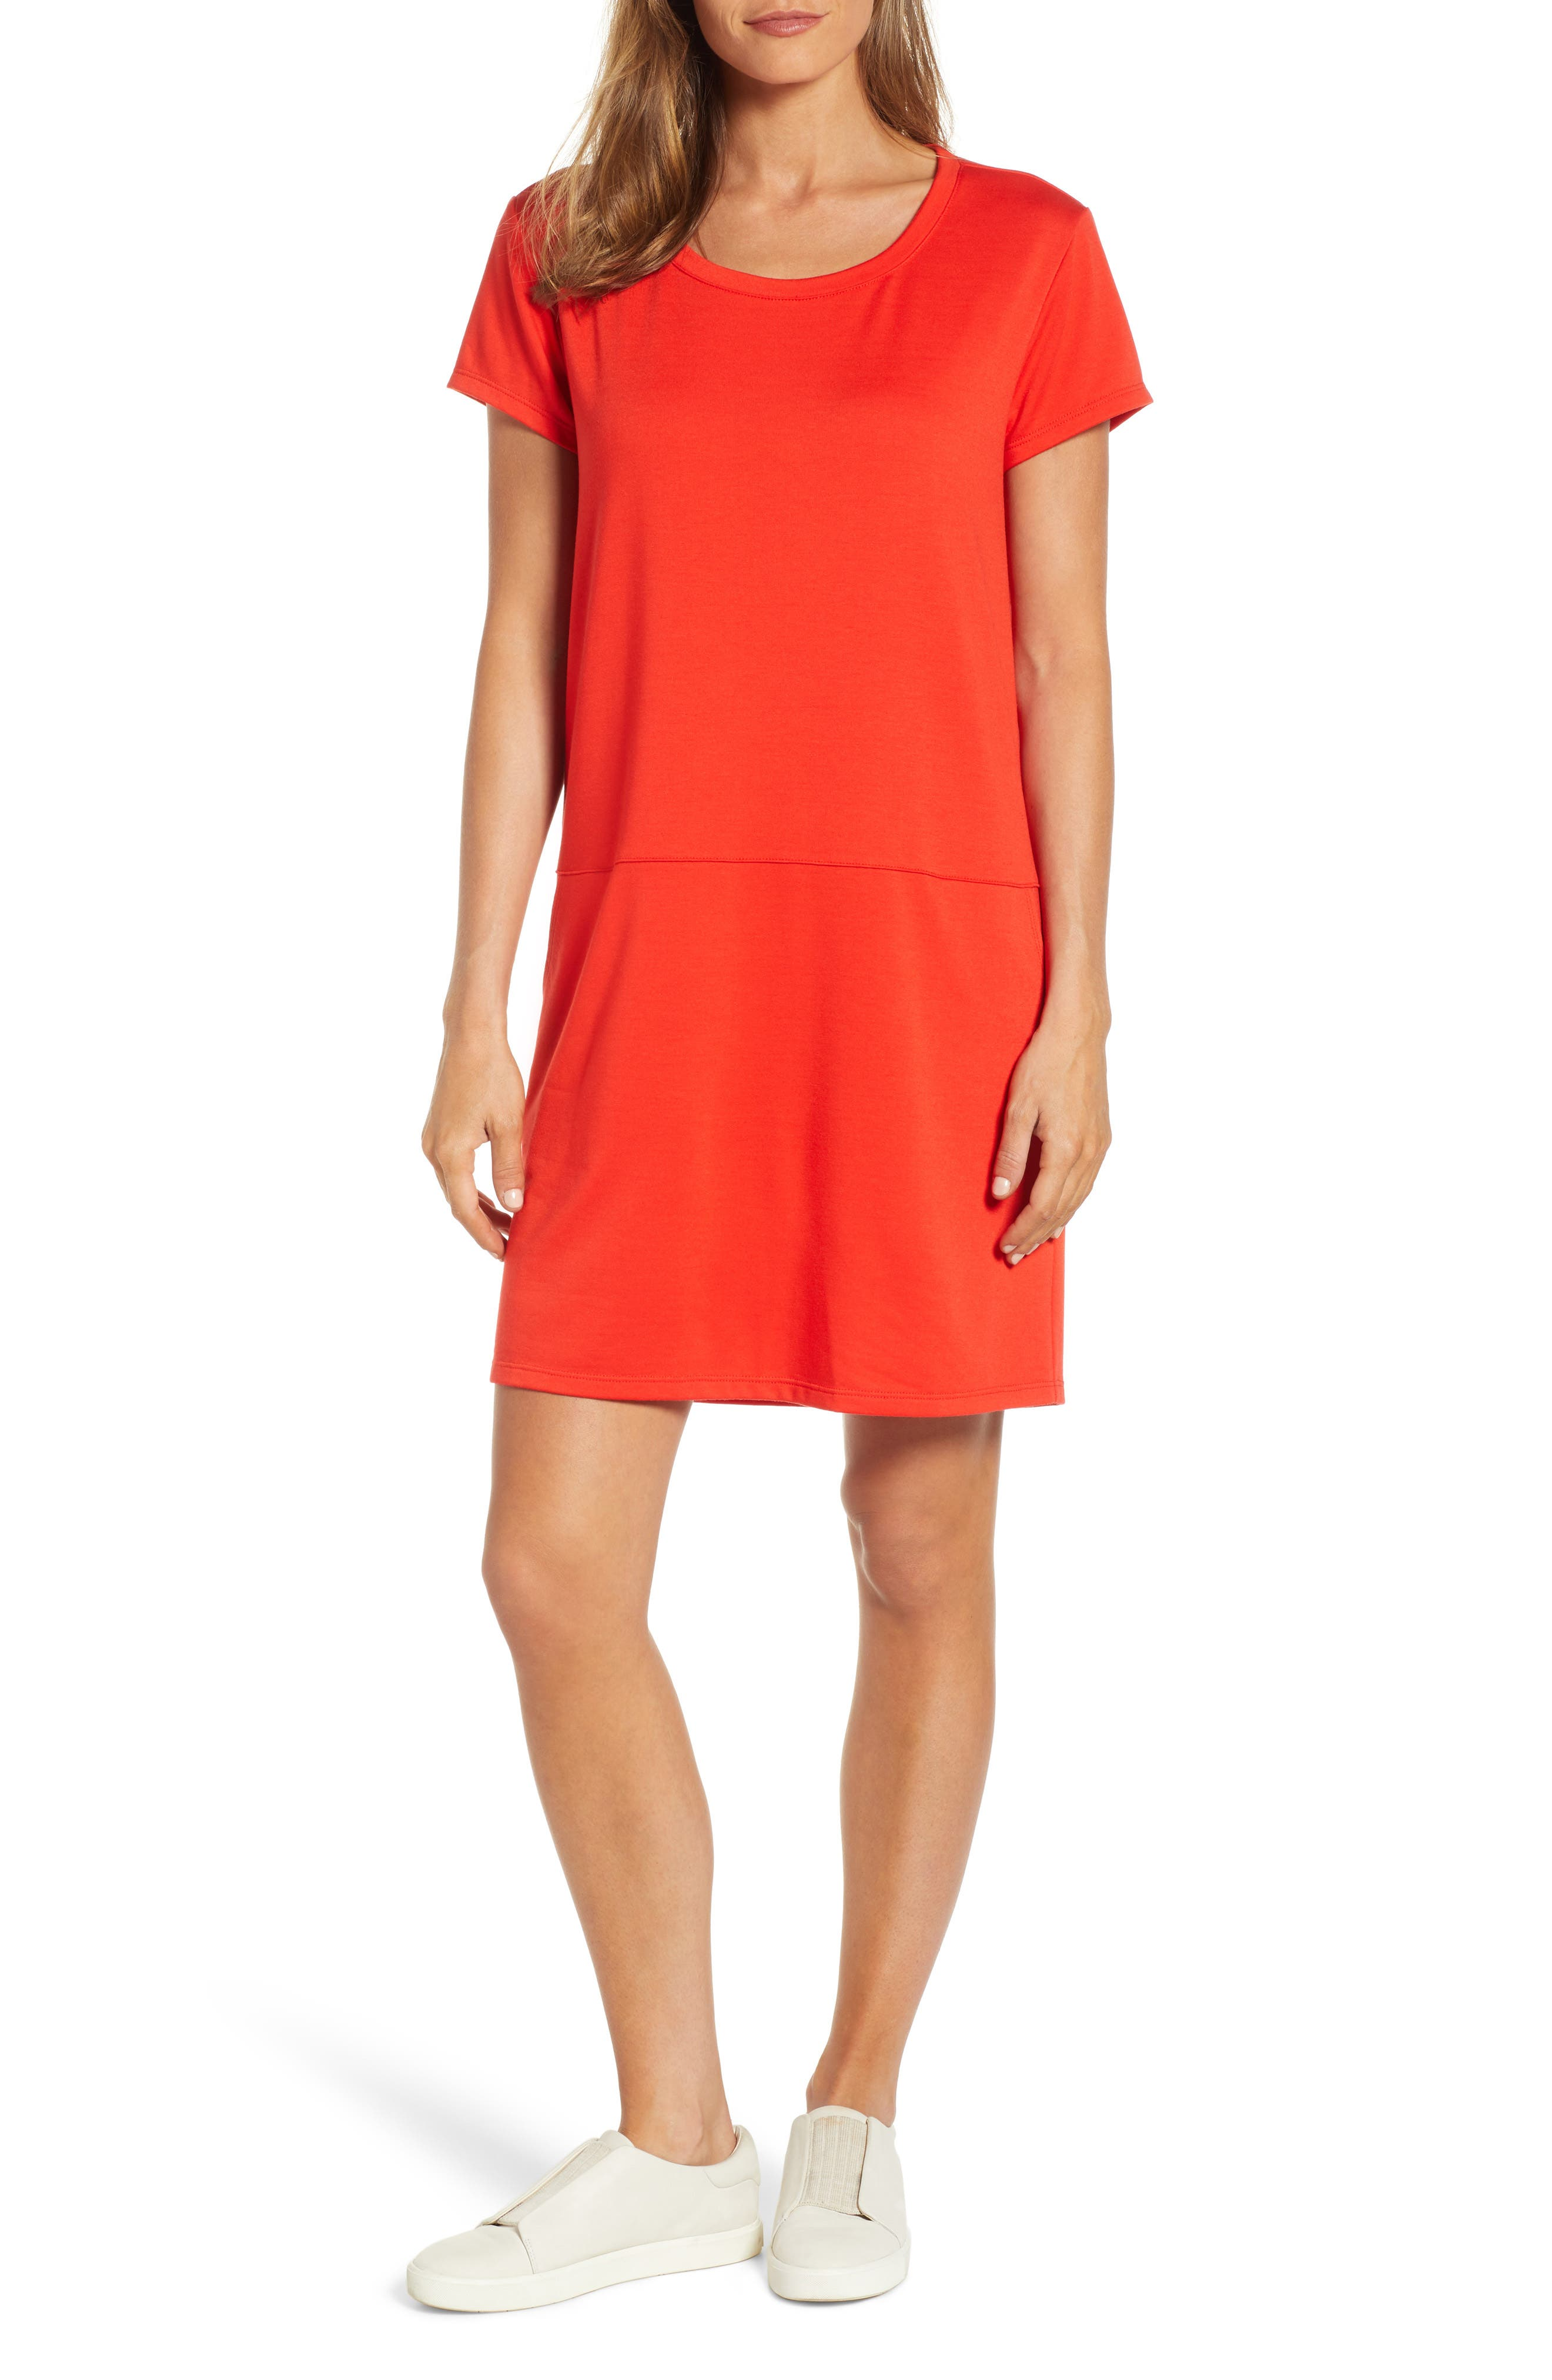 bfedd597a794 Women s Red Dresses